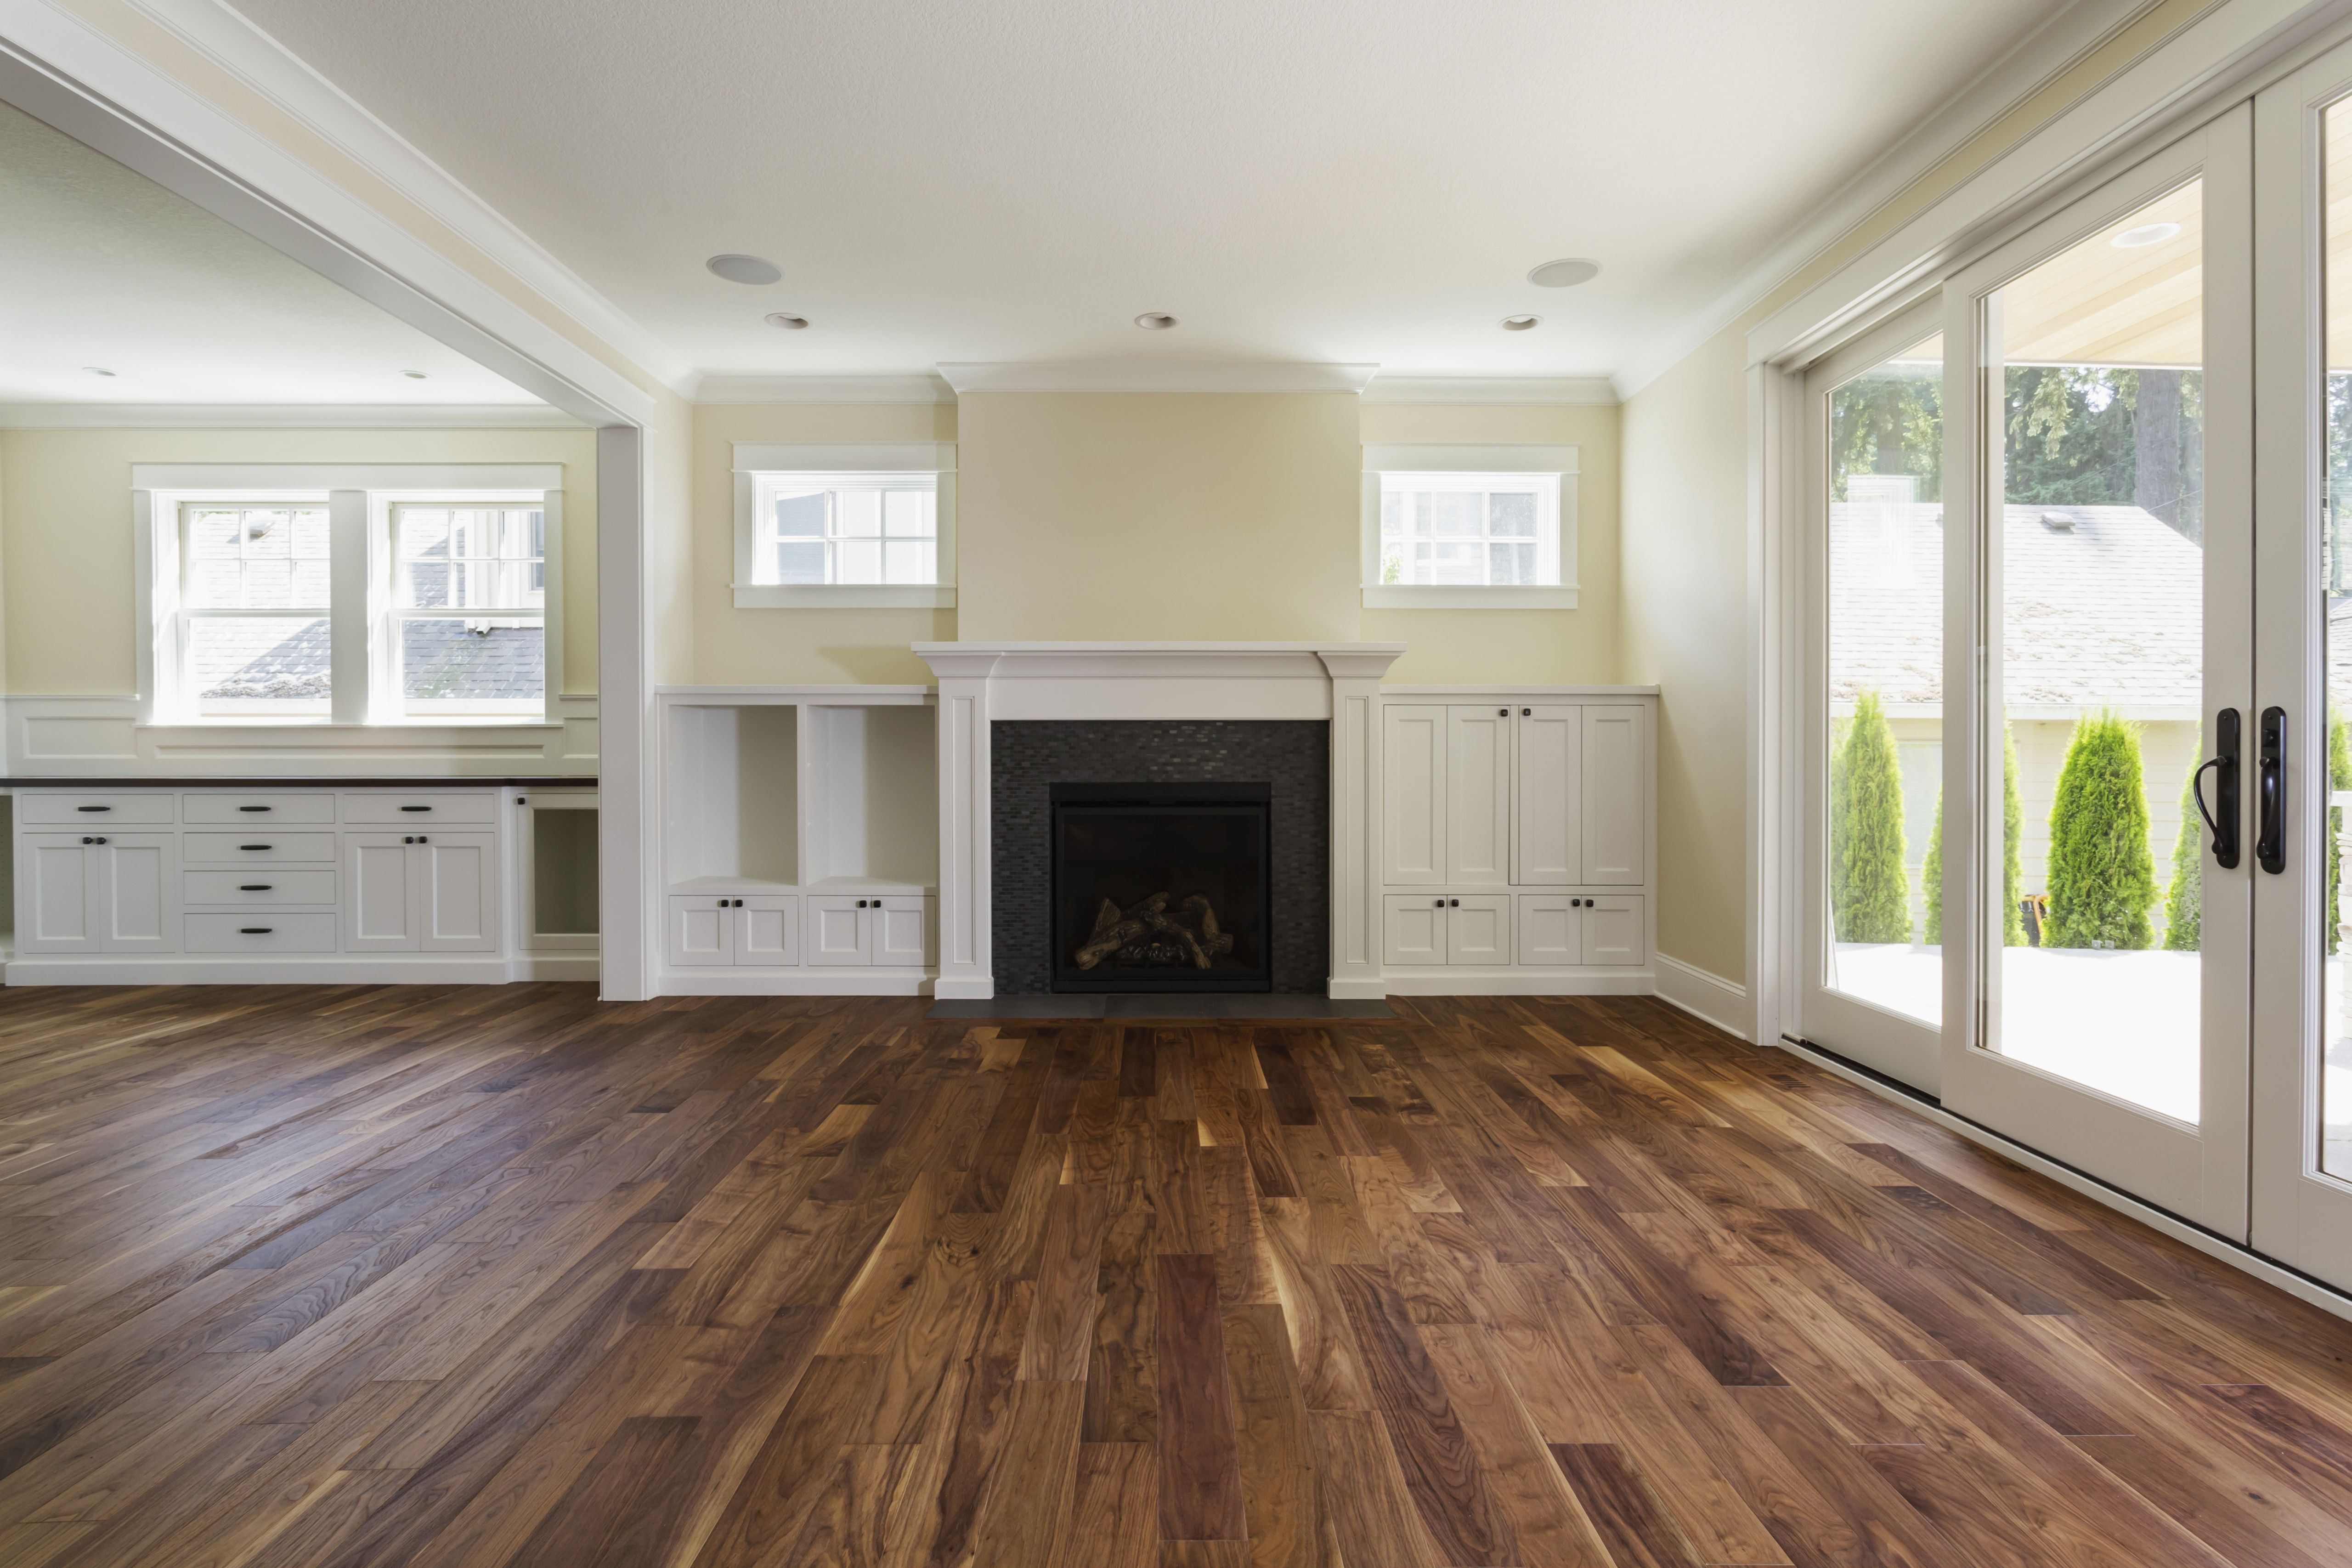 hardwood flooring atlanta ga of the pros and cons of prefinished hardwood flooring with fireplace and built in shelves in living room 482143011 57bef8e33df78cc16e035397